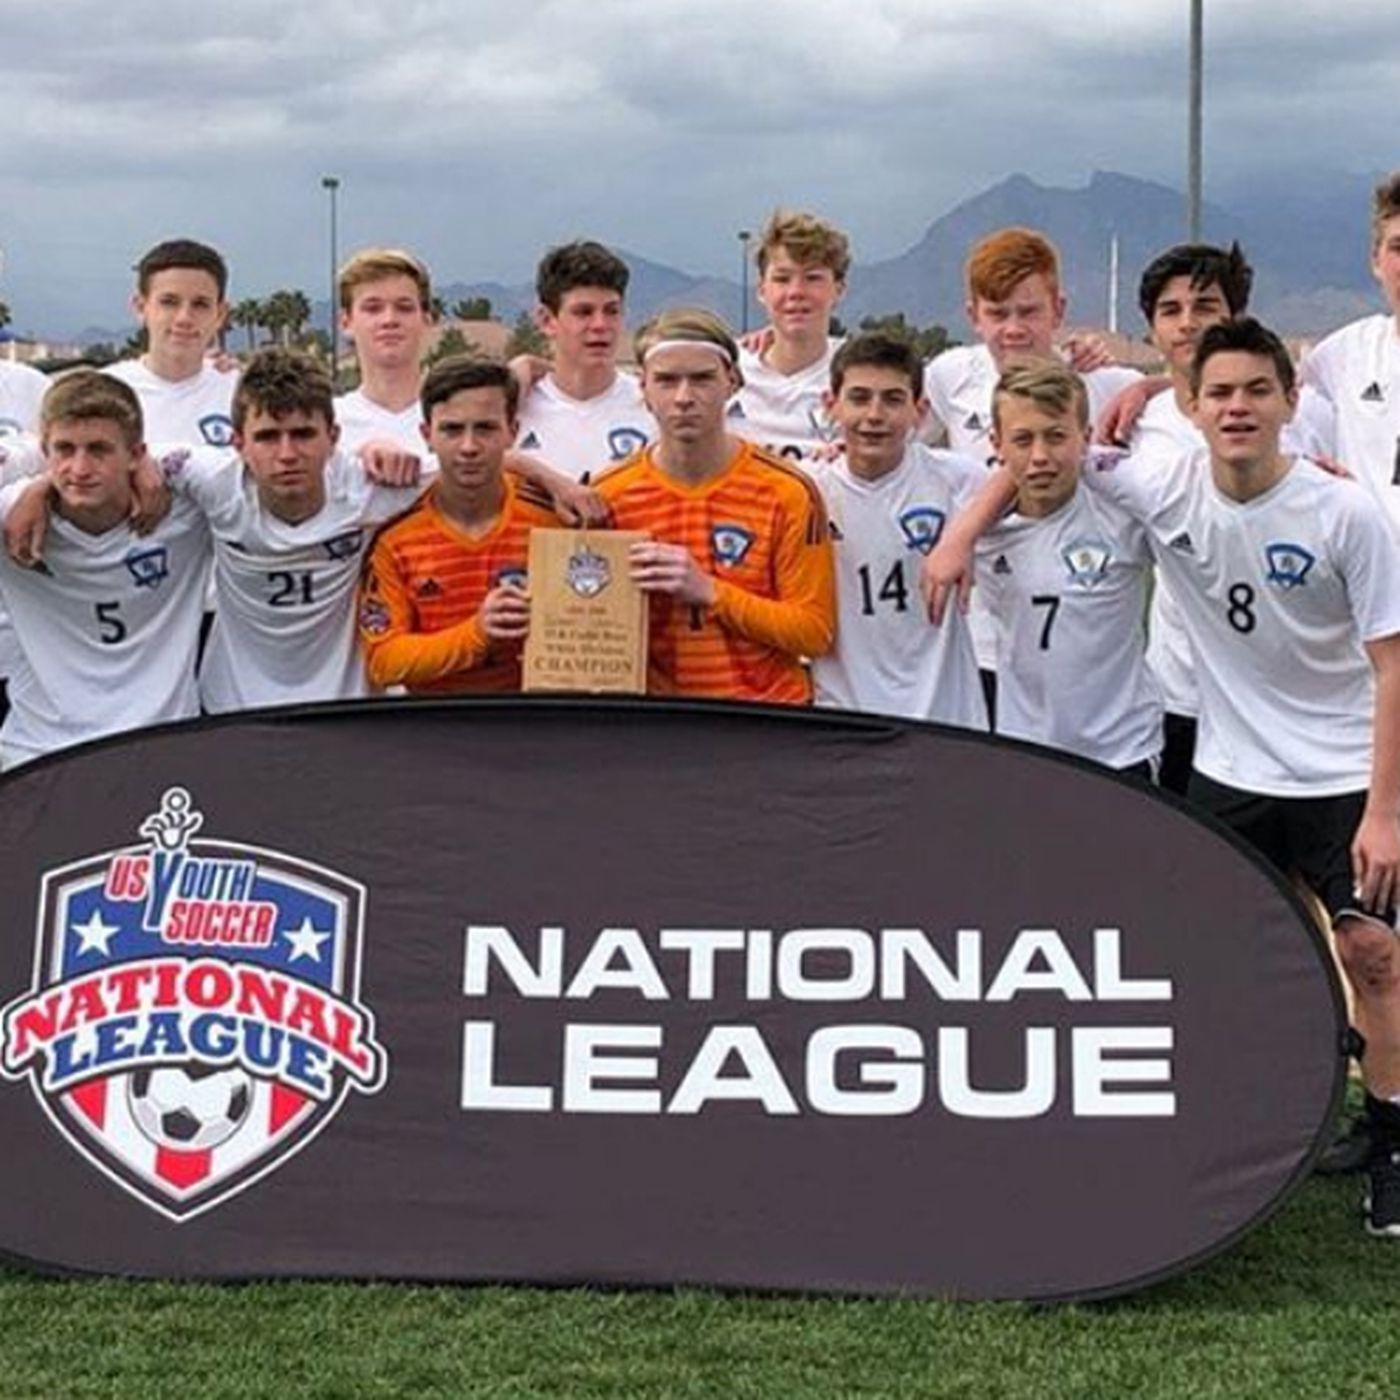 533f568f1a6 Real Jersey FC, Ukrainian Nationals win National League divisions, punch  tickets to national championships